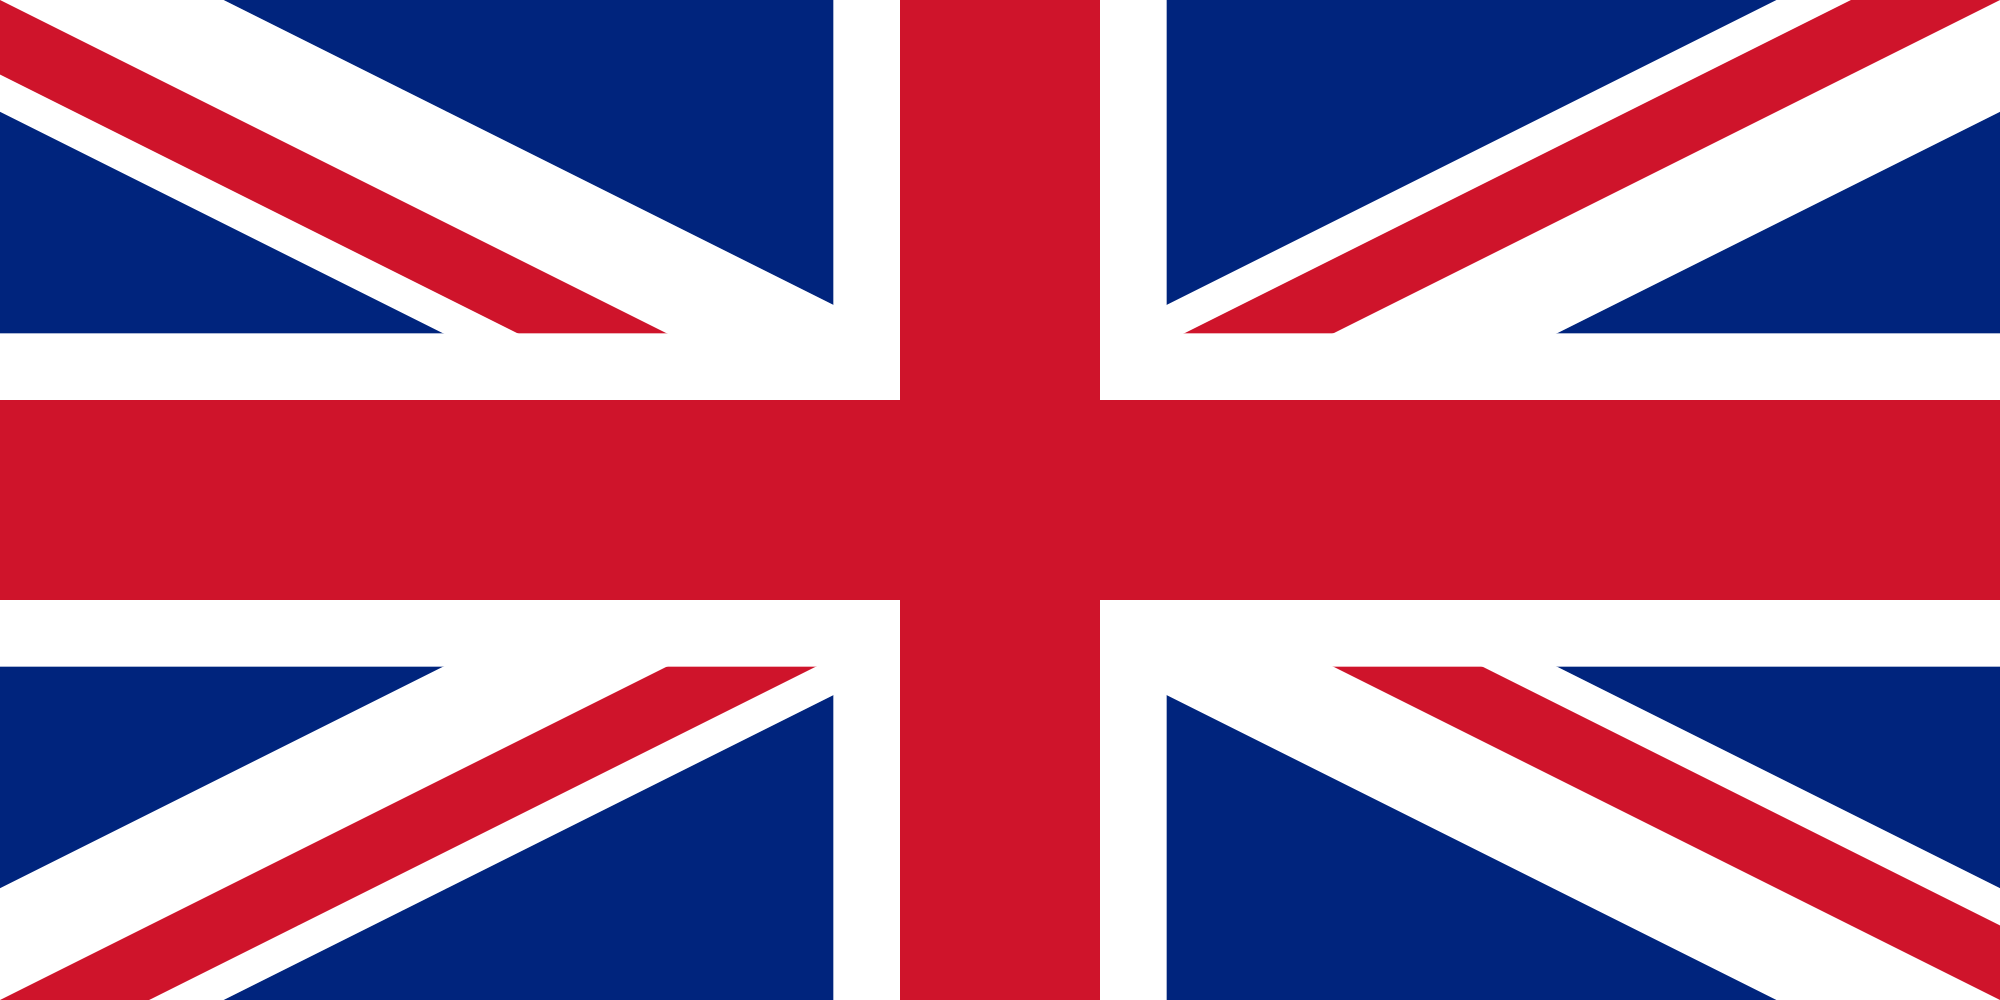 File:Flag of the United Kingdom.svg - Wikimedia Commons